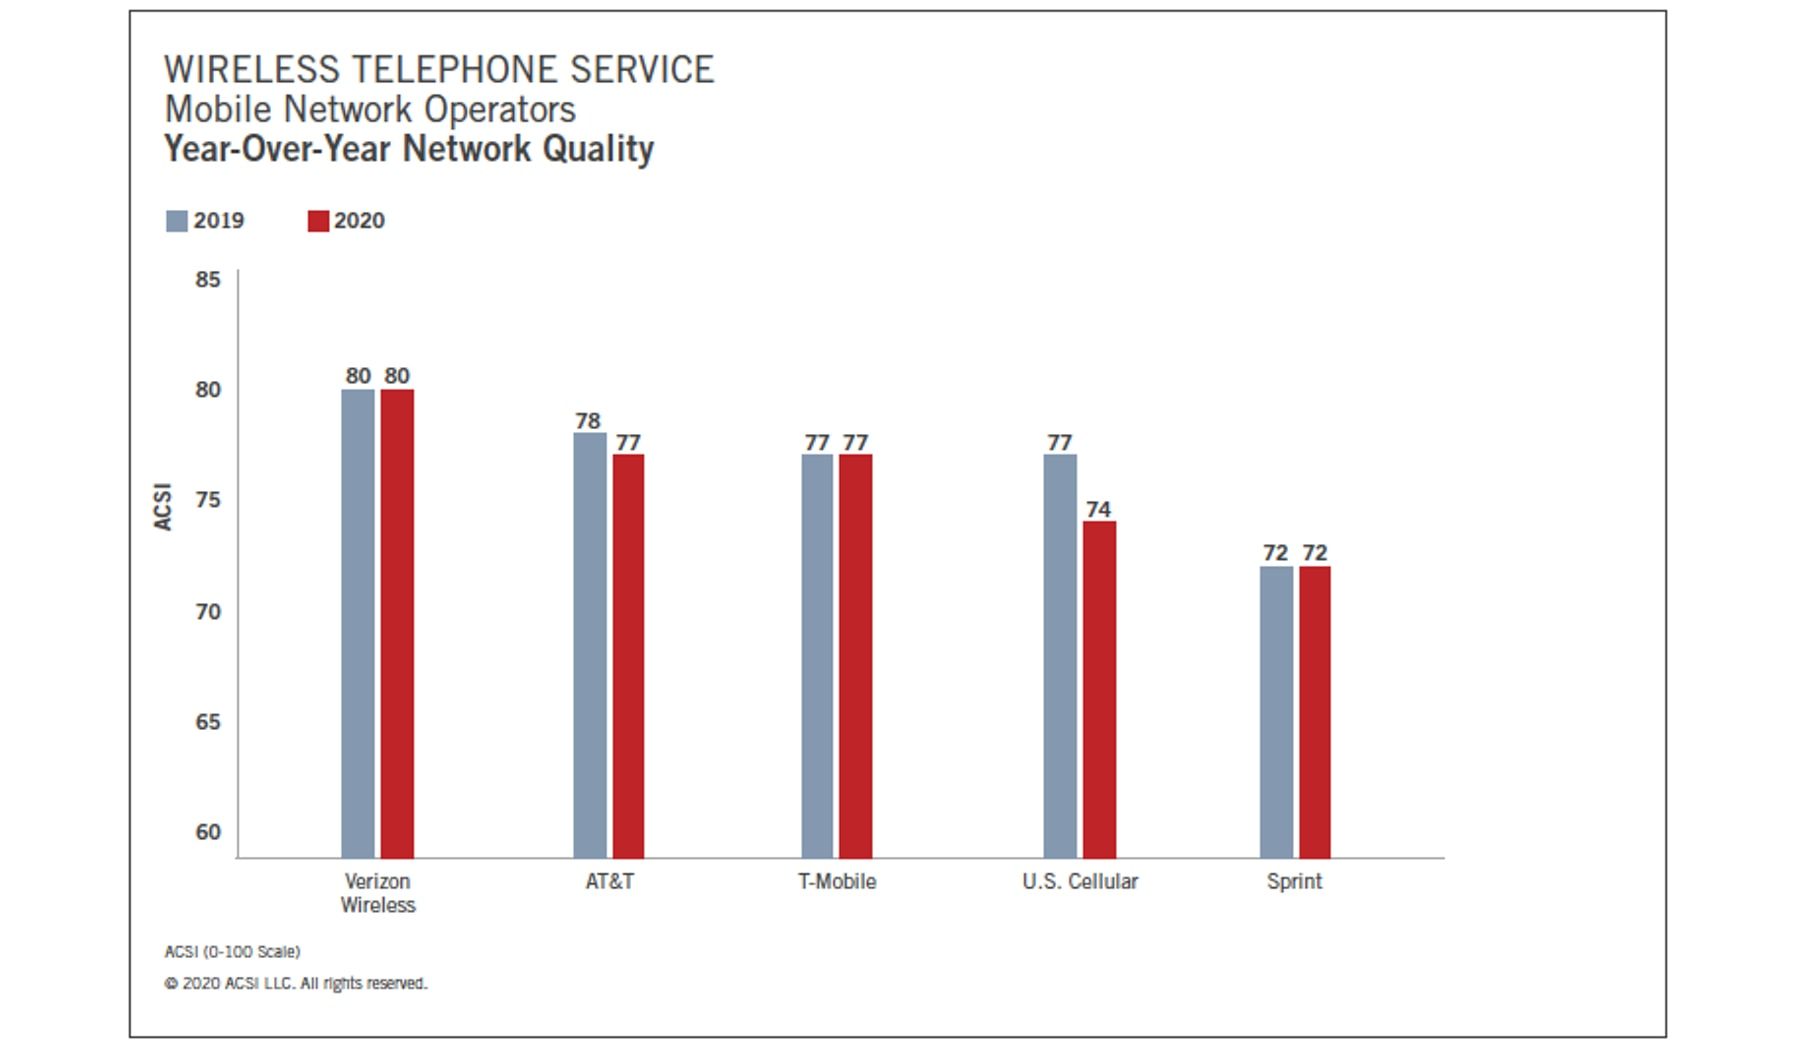 Verizon holds on to first place with consumers as the mobile network with the best quality